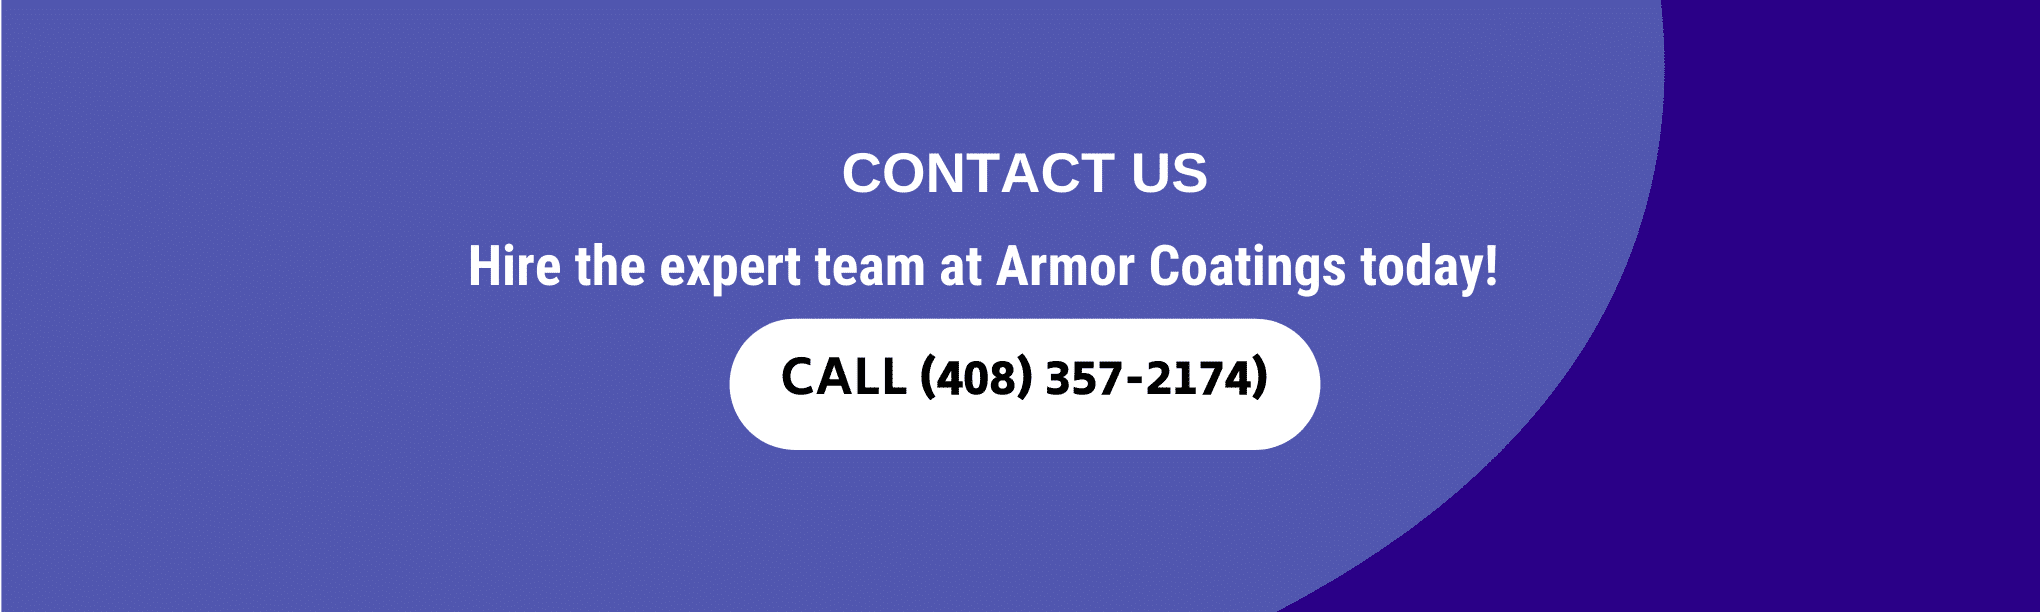 Armor Coatings CTA